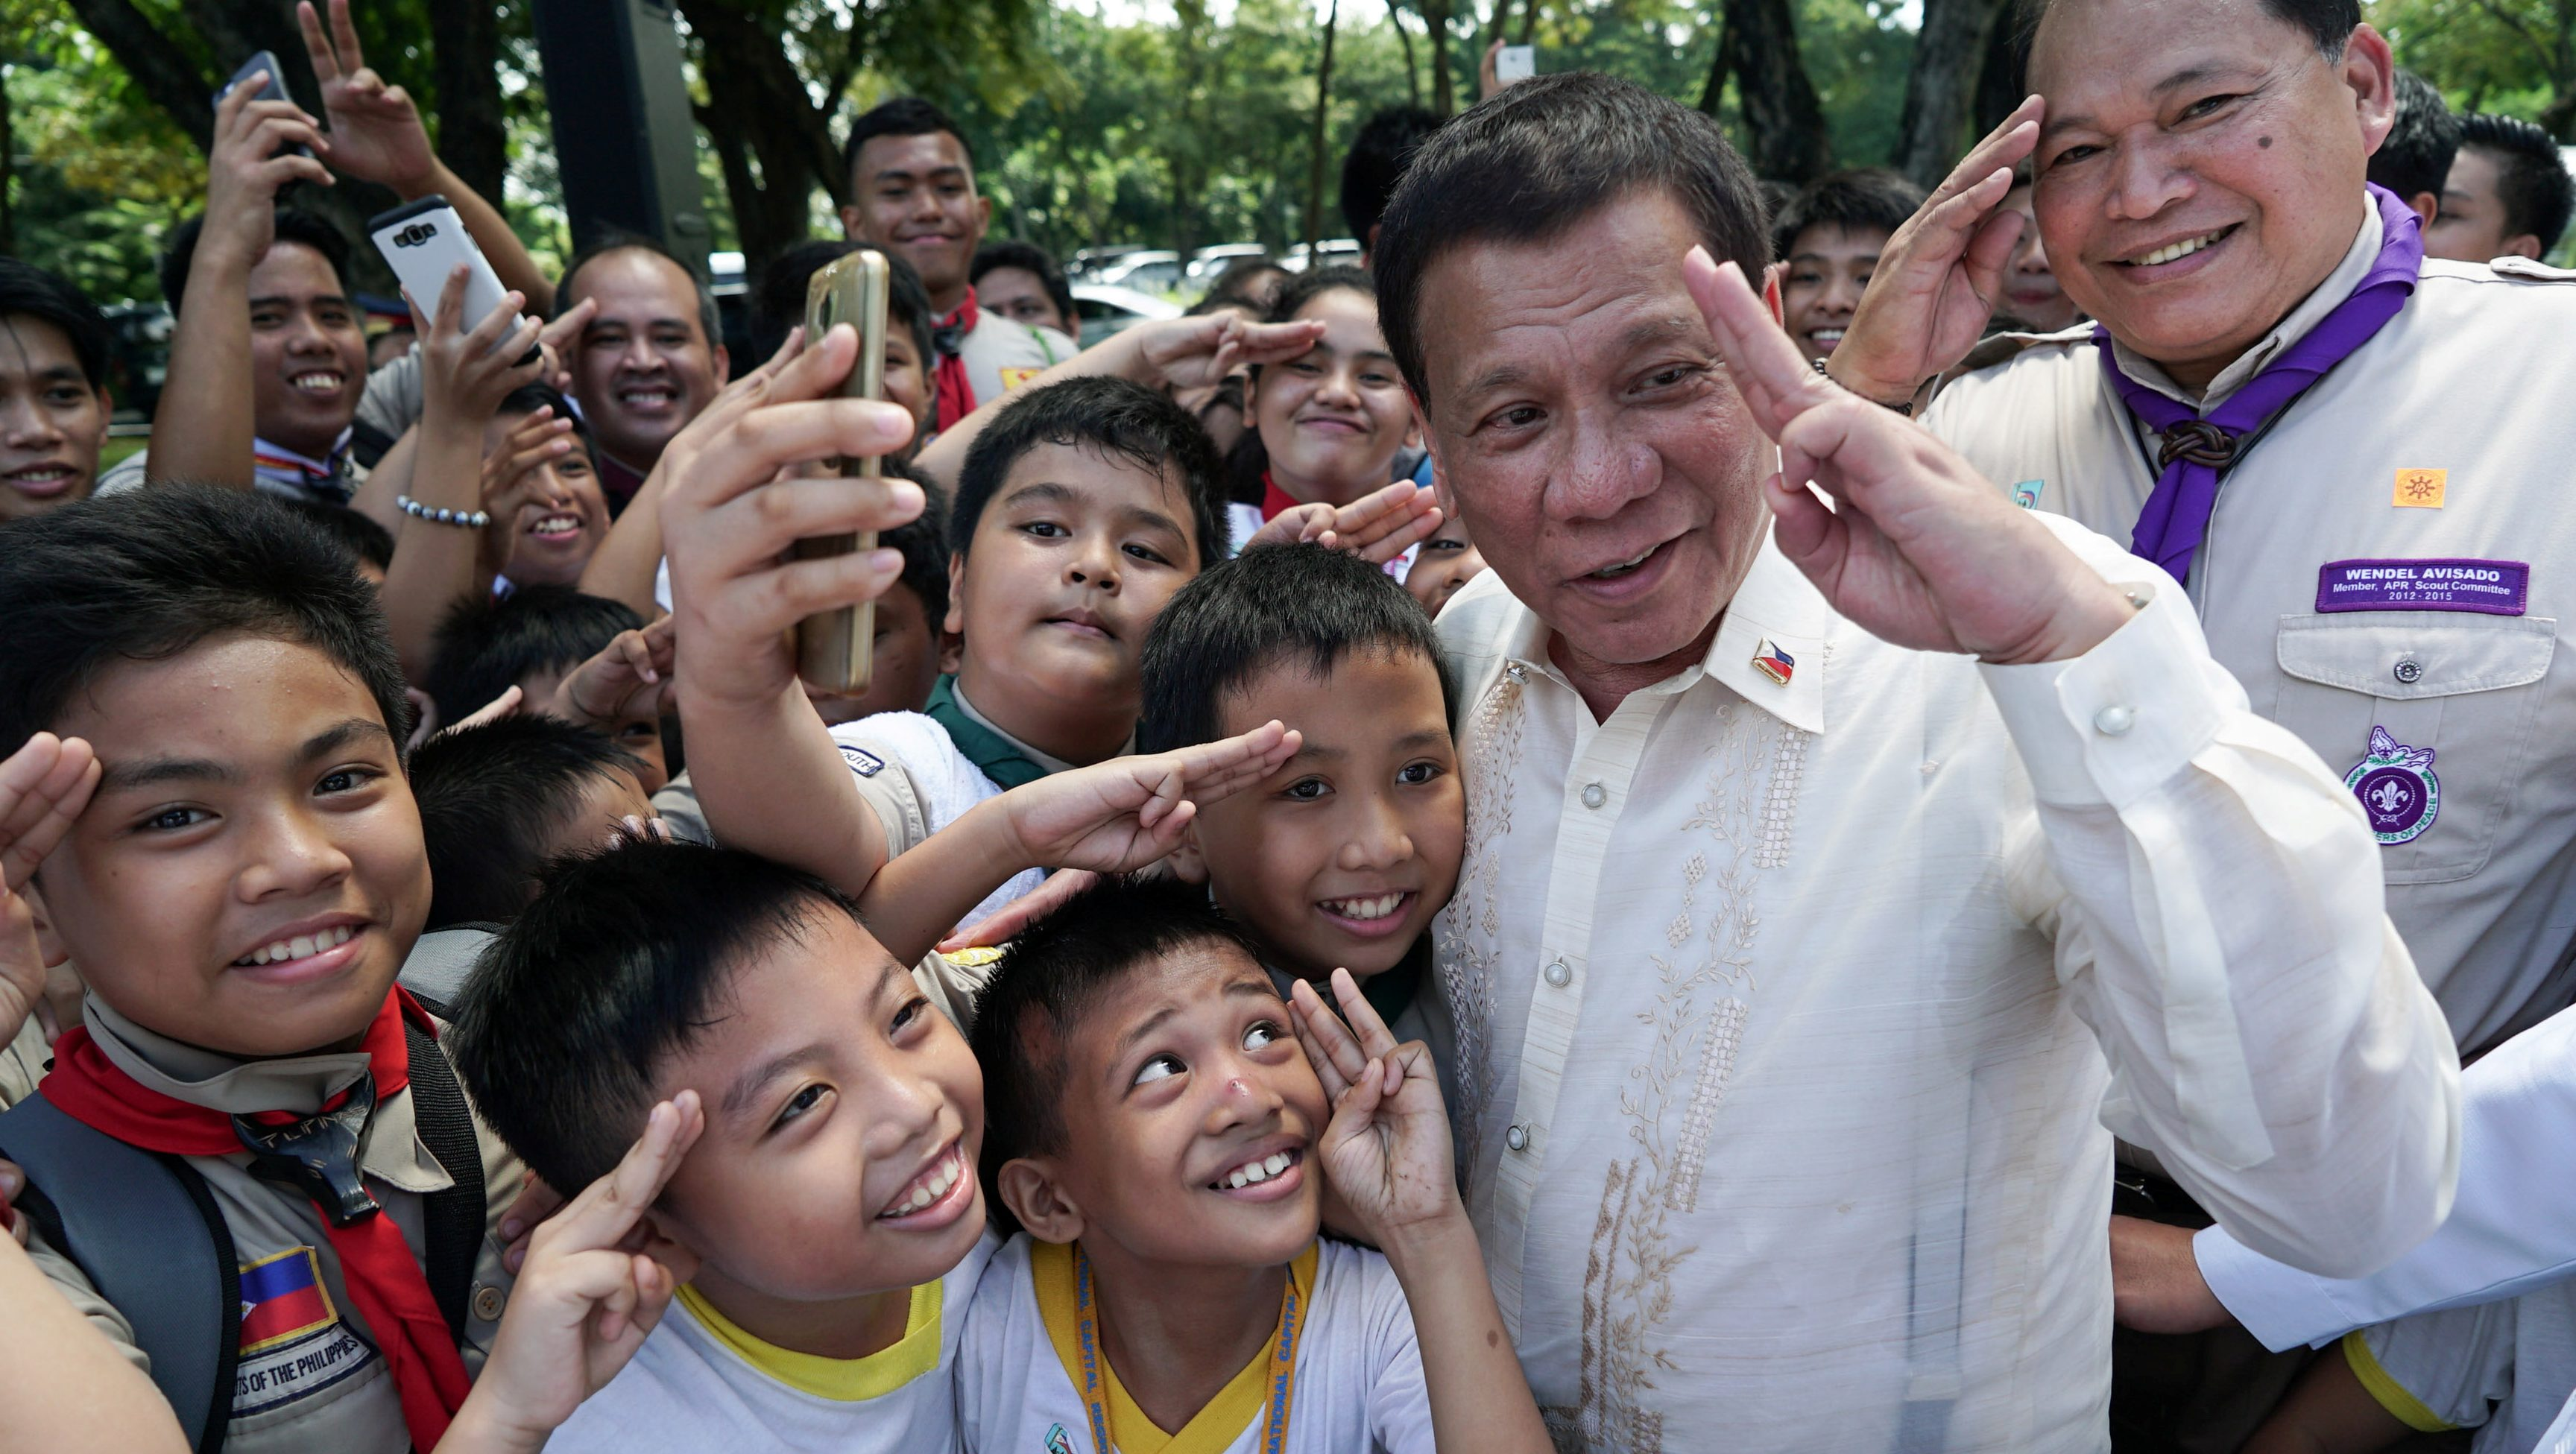 Philippine President Rodrigo Duterte interacts with members of the Boy Scouts of the Philippines who attended the National Heroes Day Commemoration at the Libingan ng mga Bayani in Fort Bonifacio, Taguig City, metro Manila, Philippines August 28, 2017. Malacanang Presidential Palace.